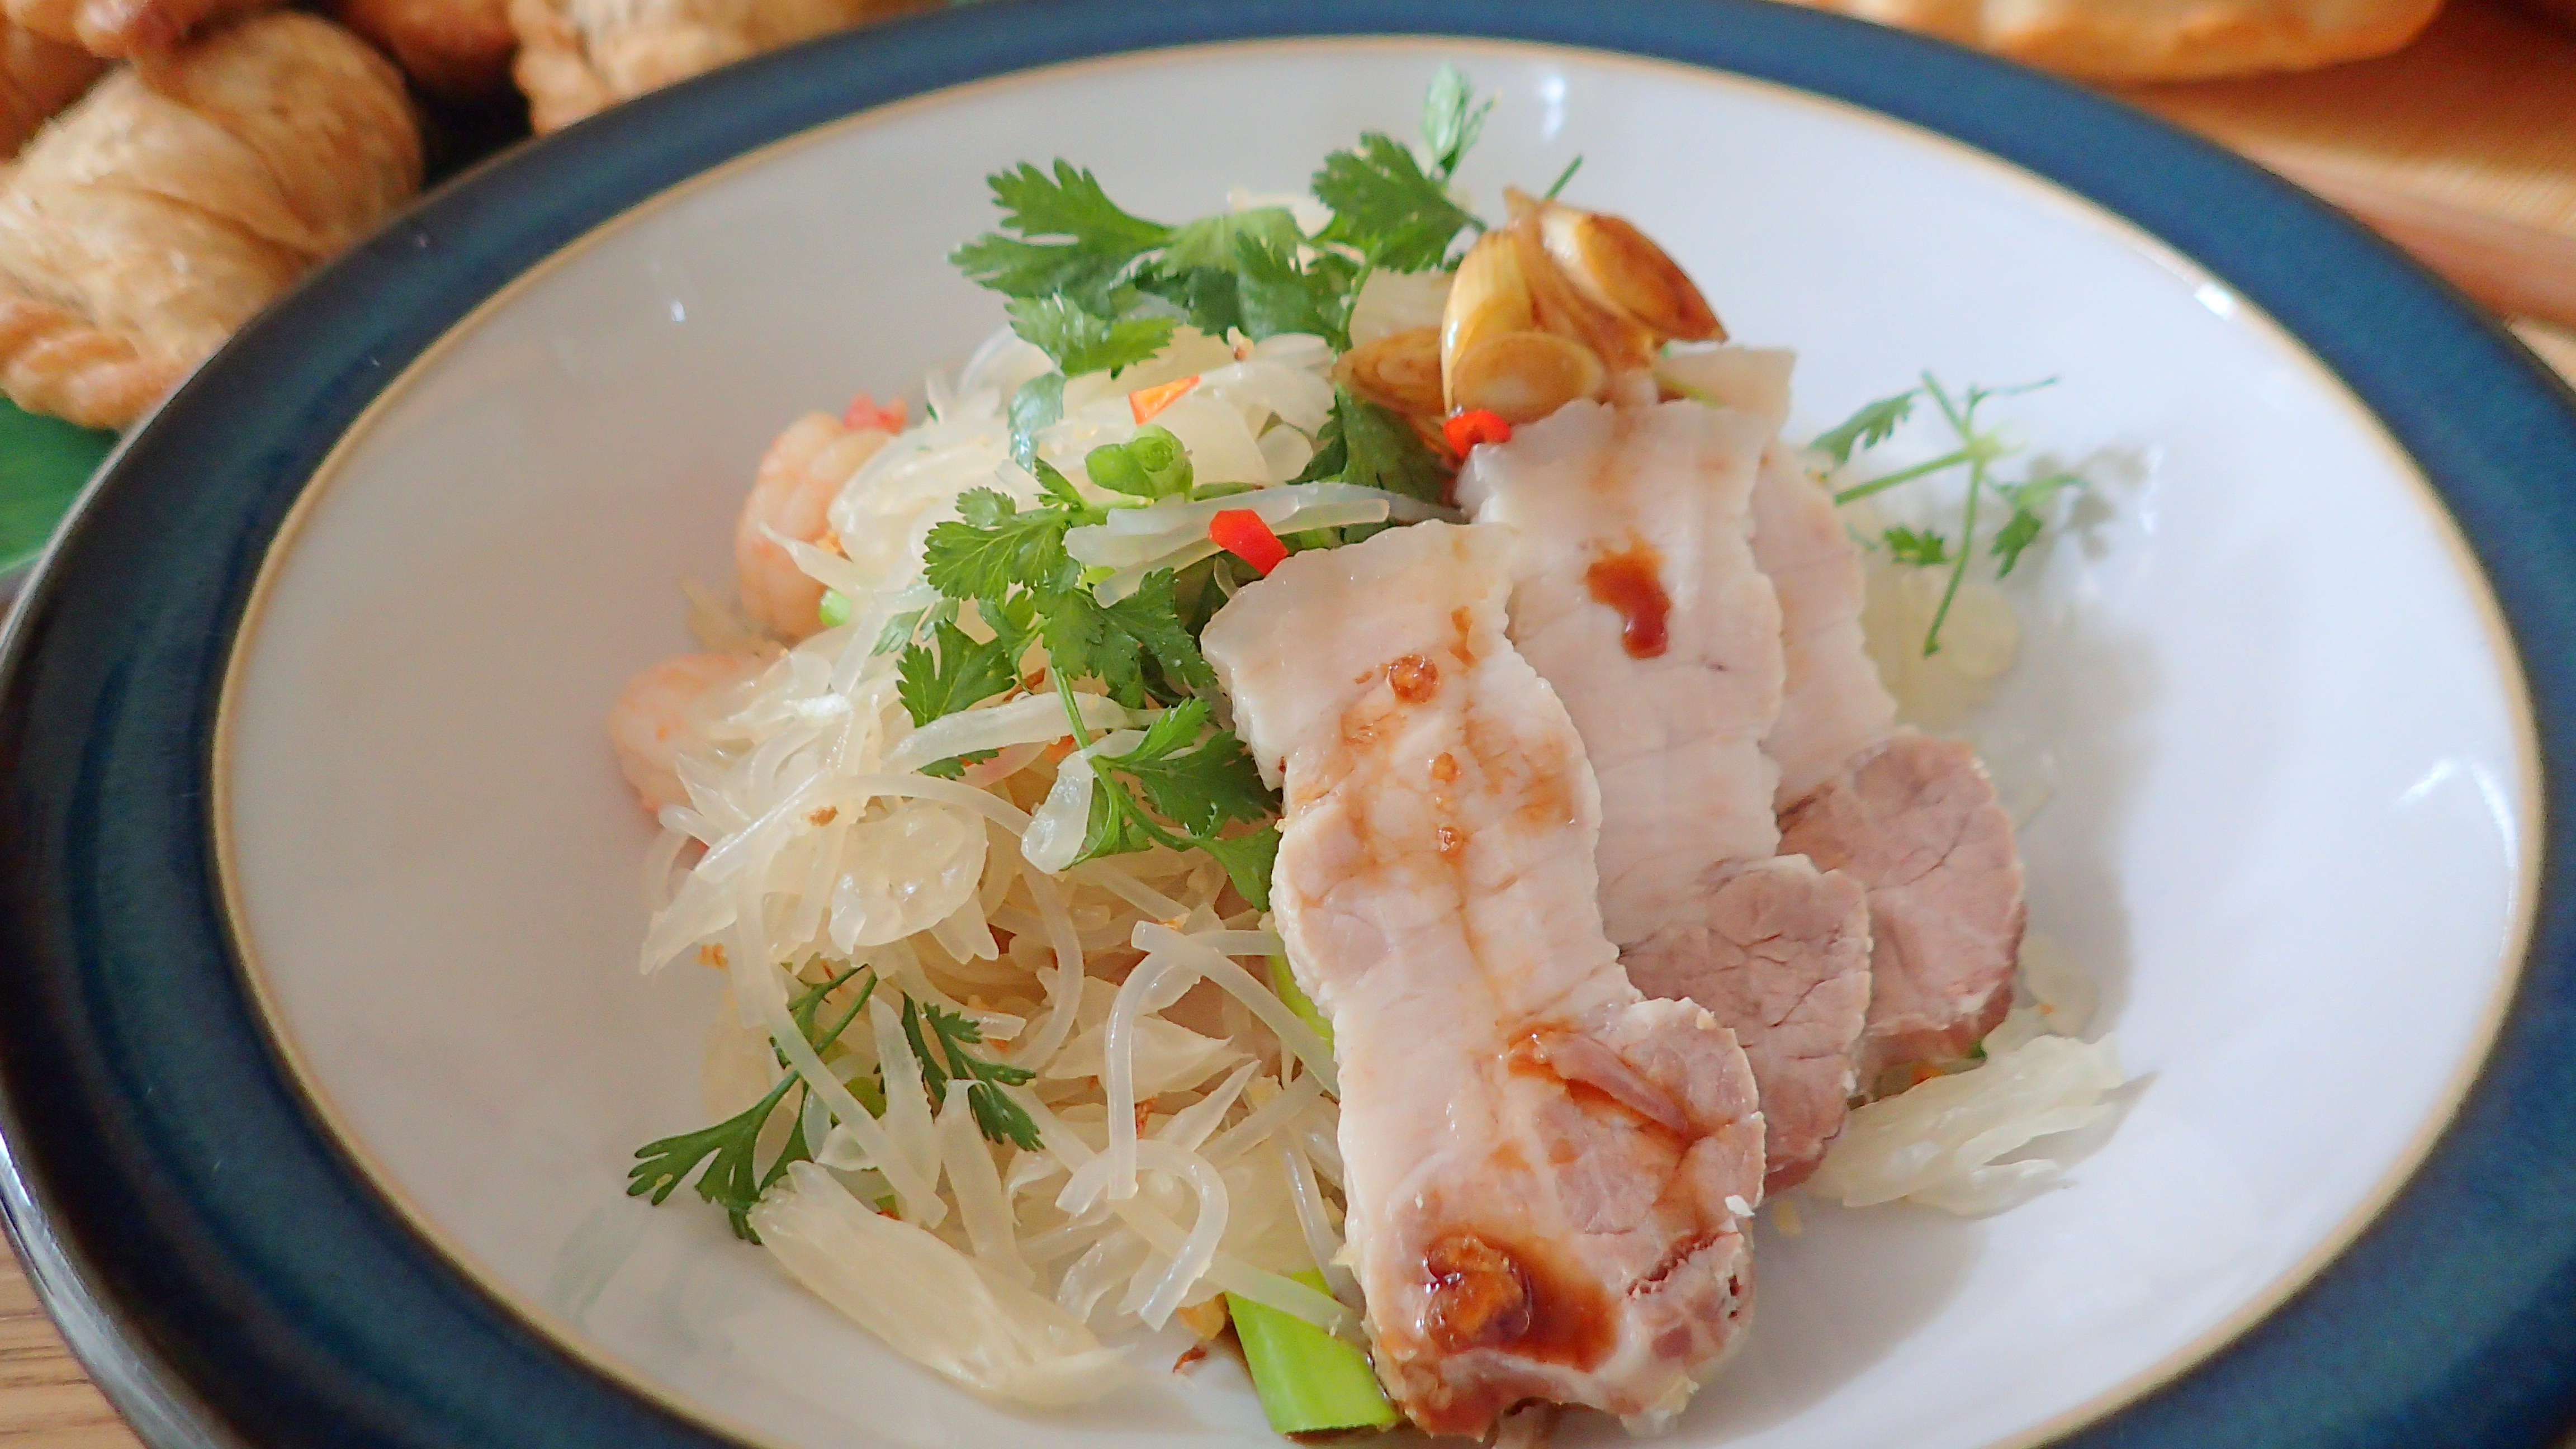 Pomelo, Prawn and Cellophane (bean thread) noodles salad – Special